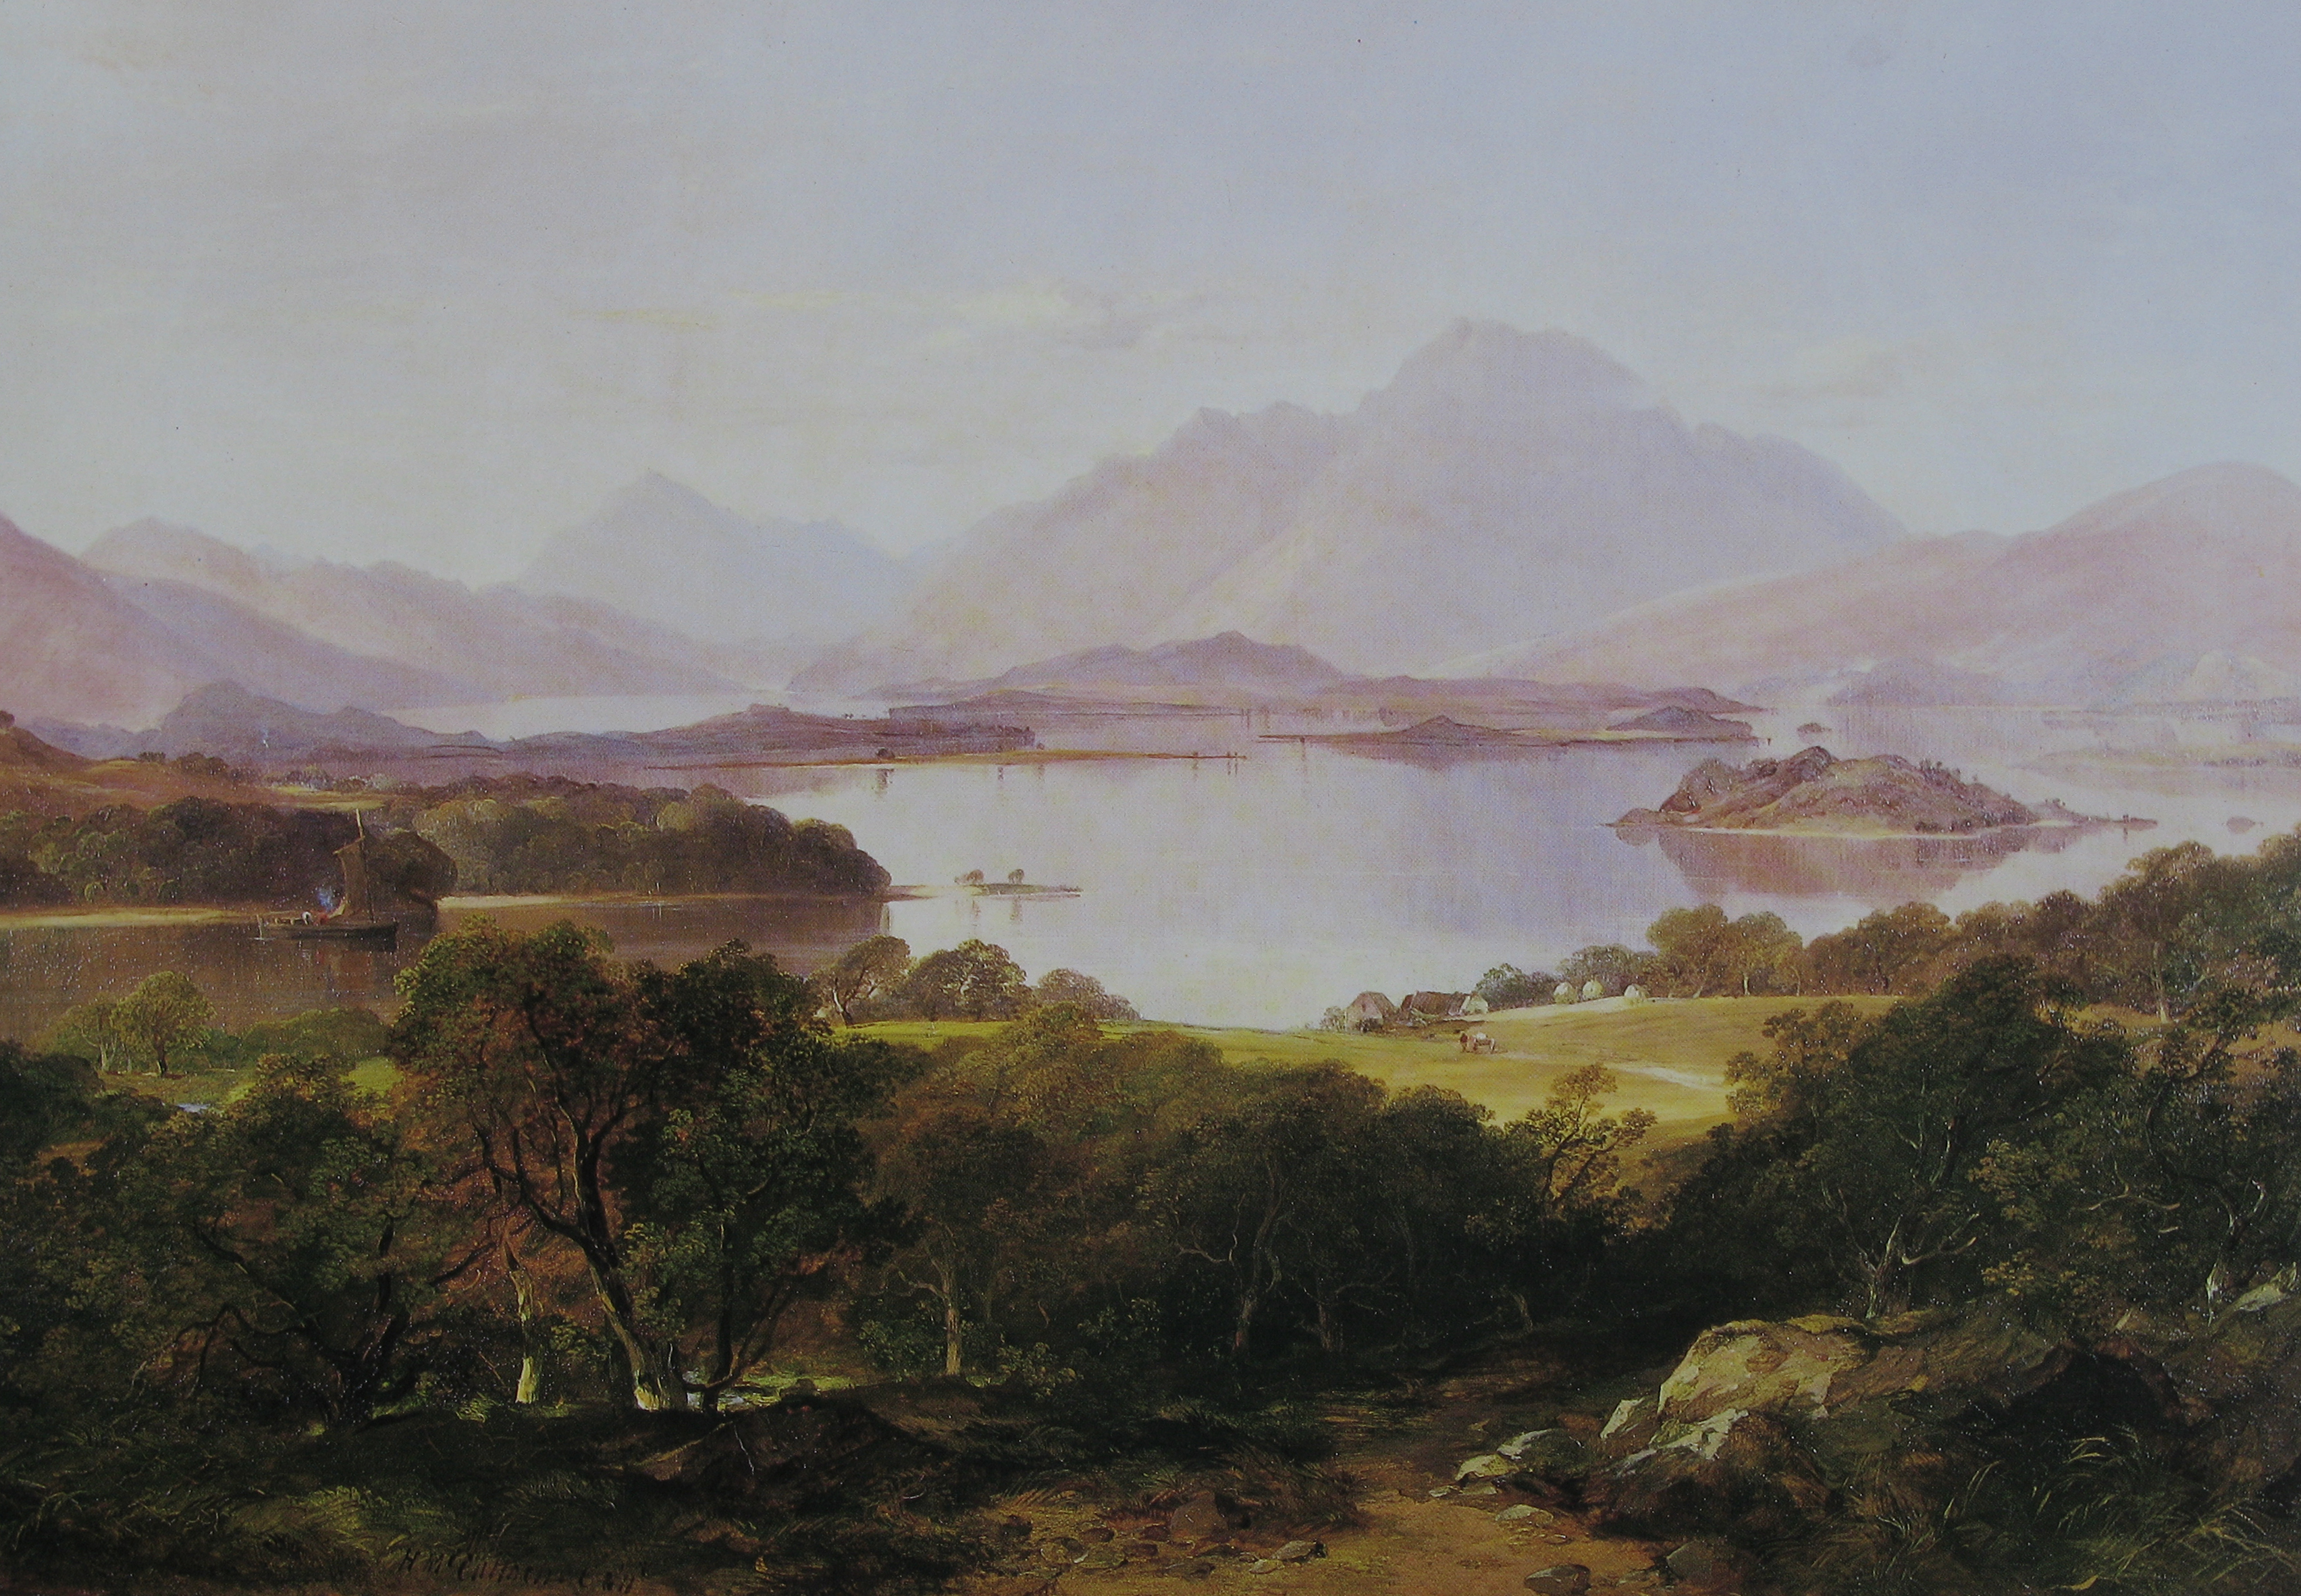 https://upload.wikimedia.org/wikipedia/commons/8/86/McCulloch_Horatio_Loch_Lomond.jpg